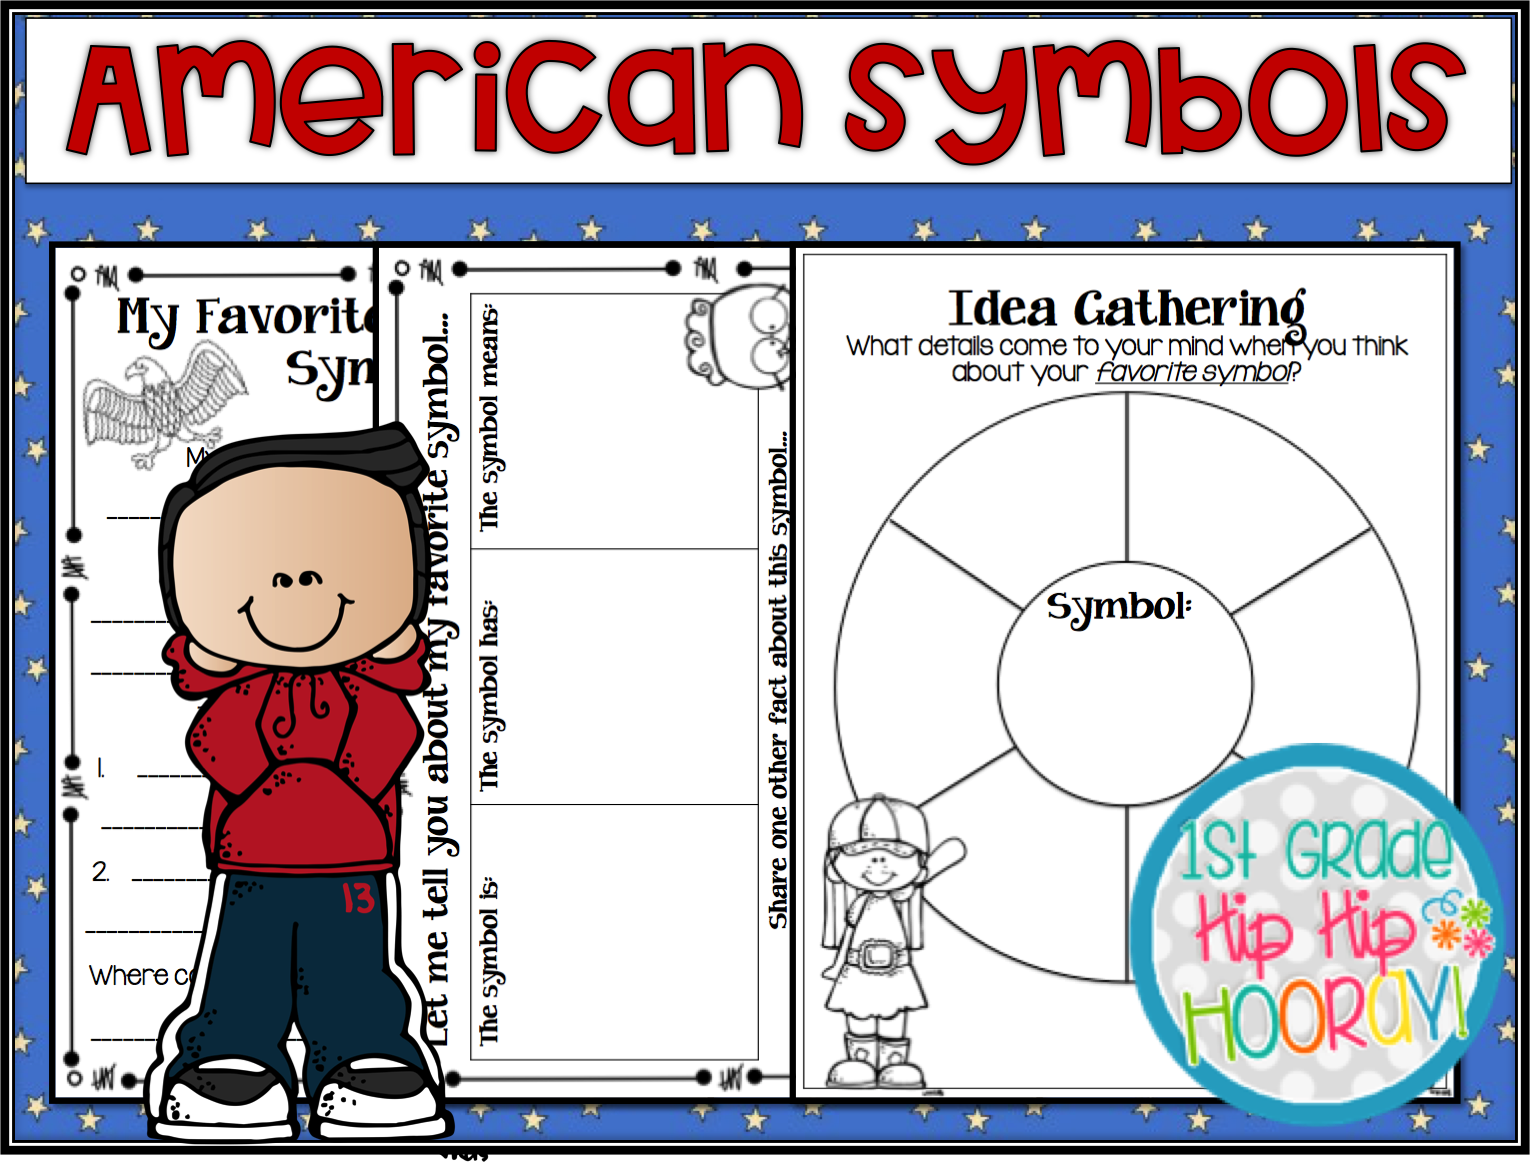 Worksheets American Symbols 1st Grade   Printable Worksheets and Activities  for Teachers [ 1163 x 1530 Pixel ]